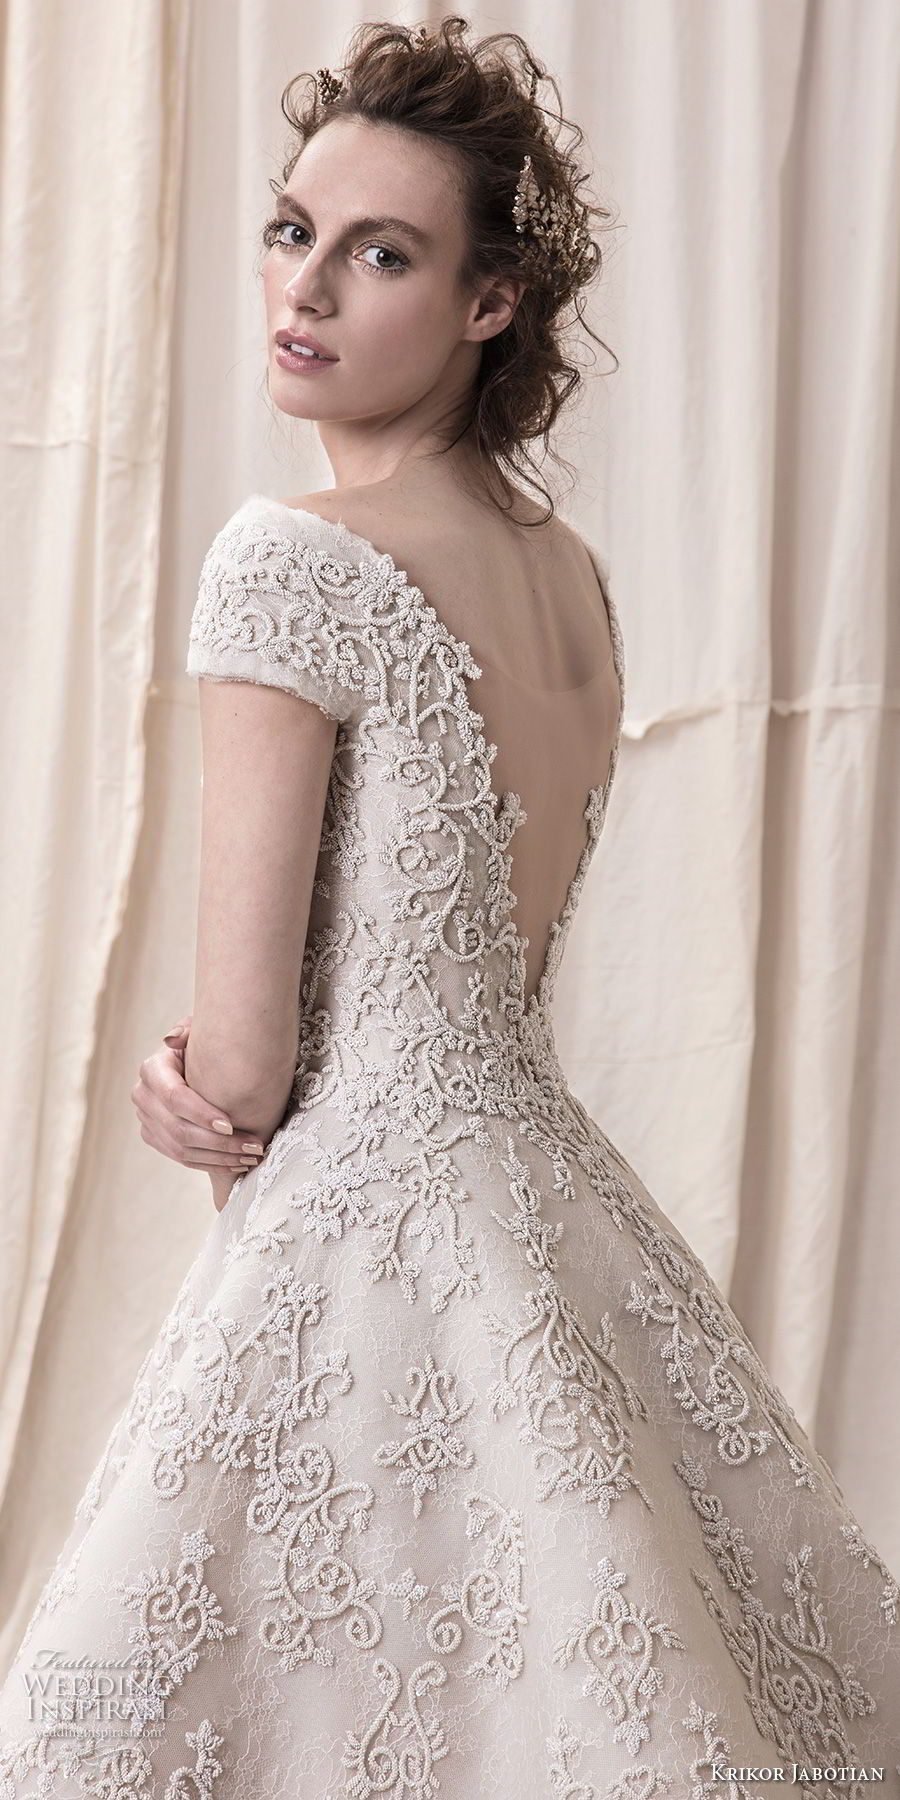 krikor jabotian spring 2018 bridal cap sleeves bateau neckline full embellishment princess glamorous high low a line wedding dress open v back chapel train (03) zbv